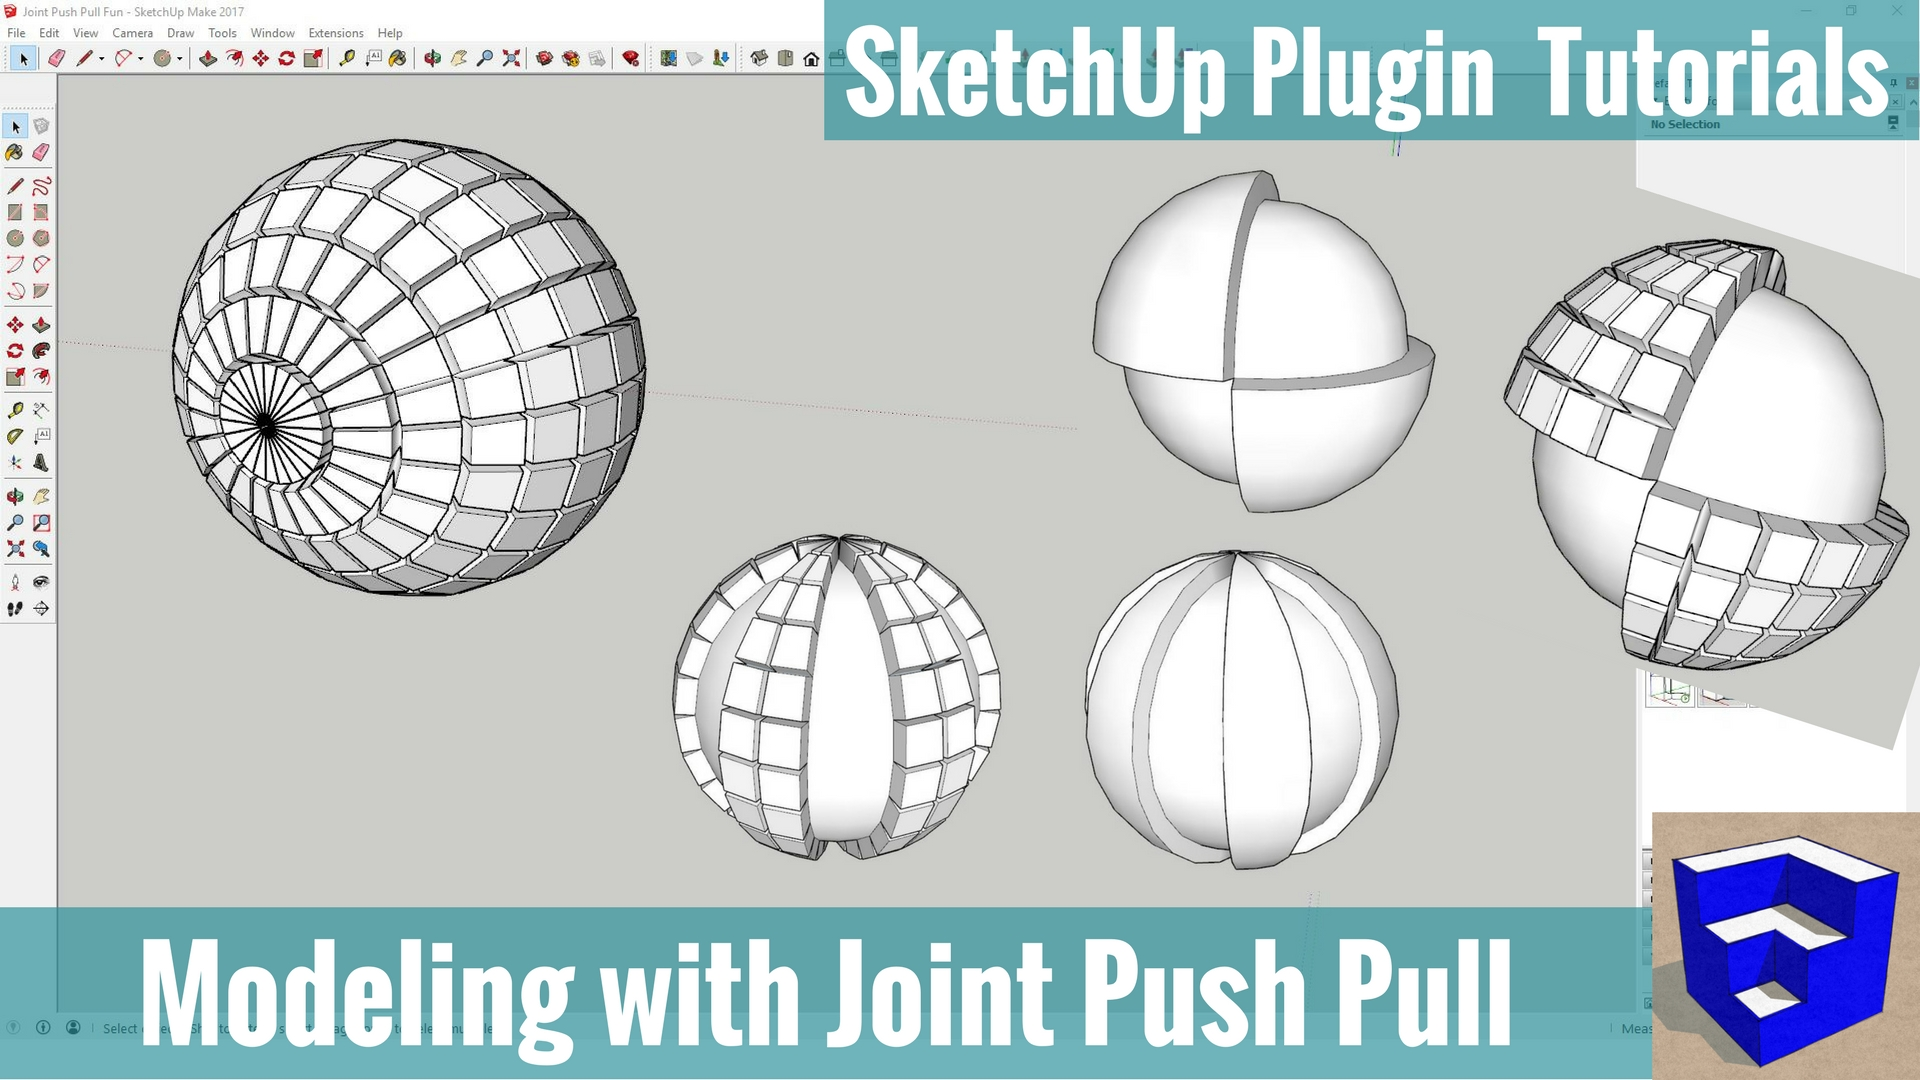 Joint Push Pull for SketchUp Tutorials - The SketchUp Essentials